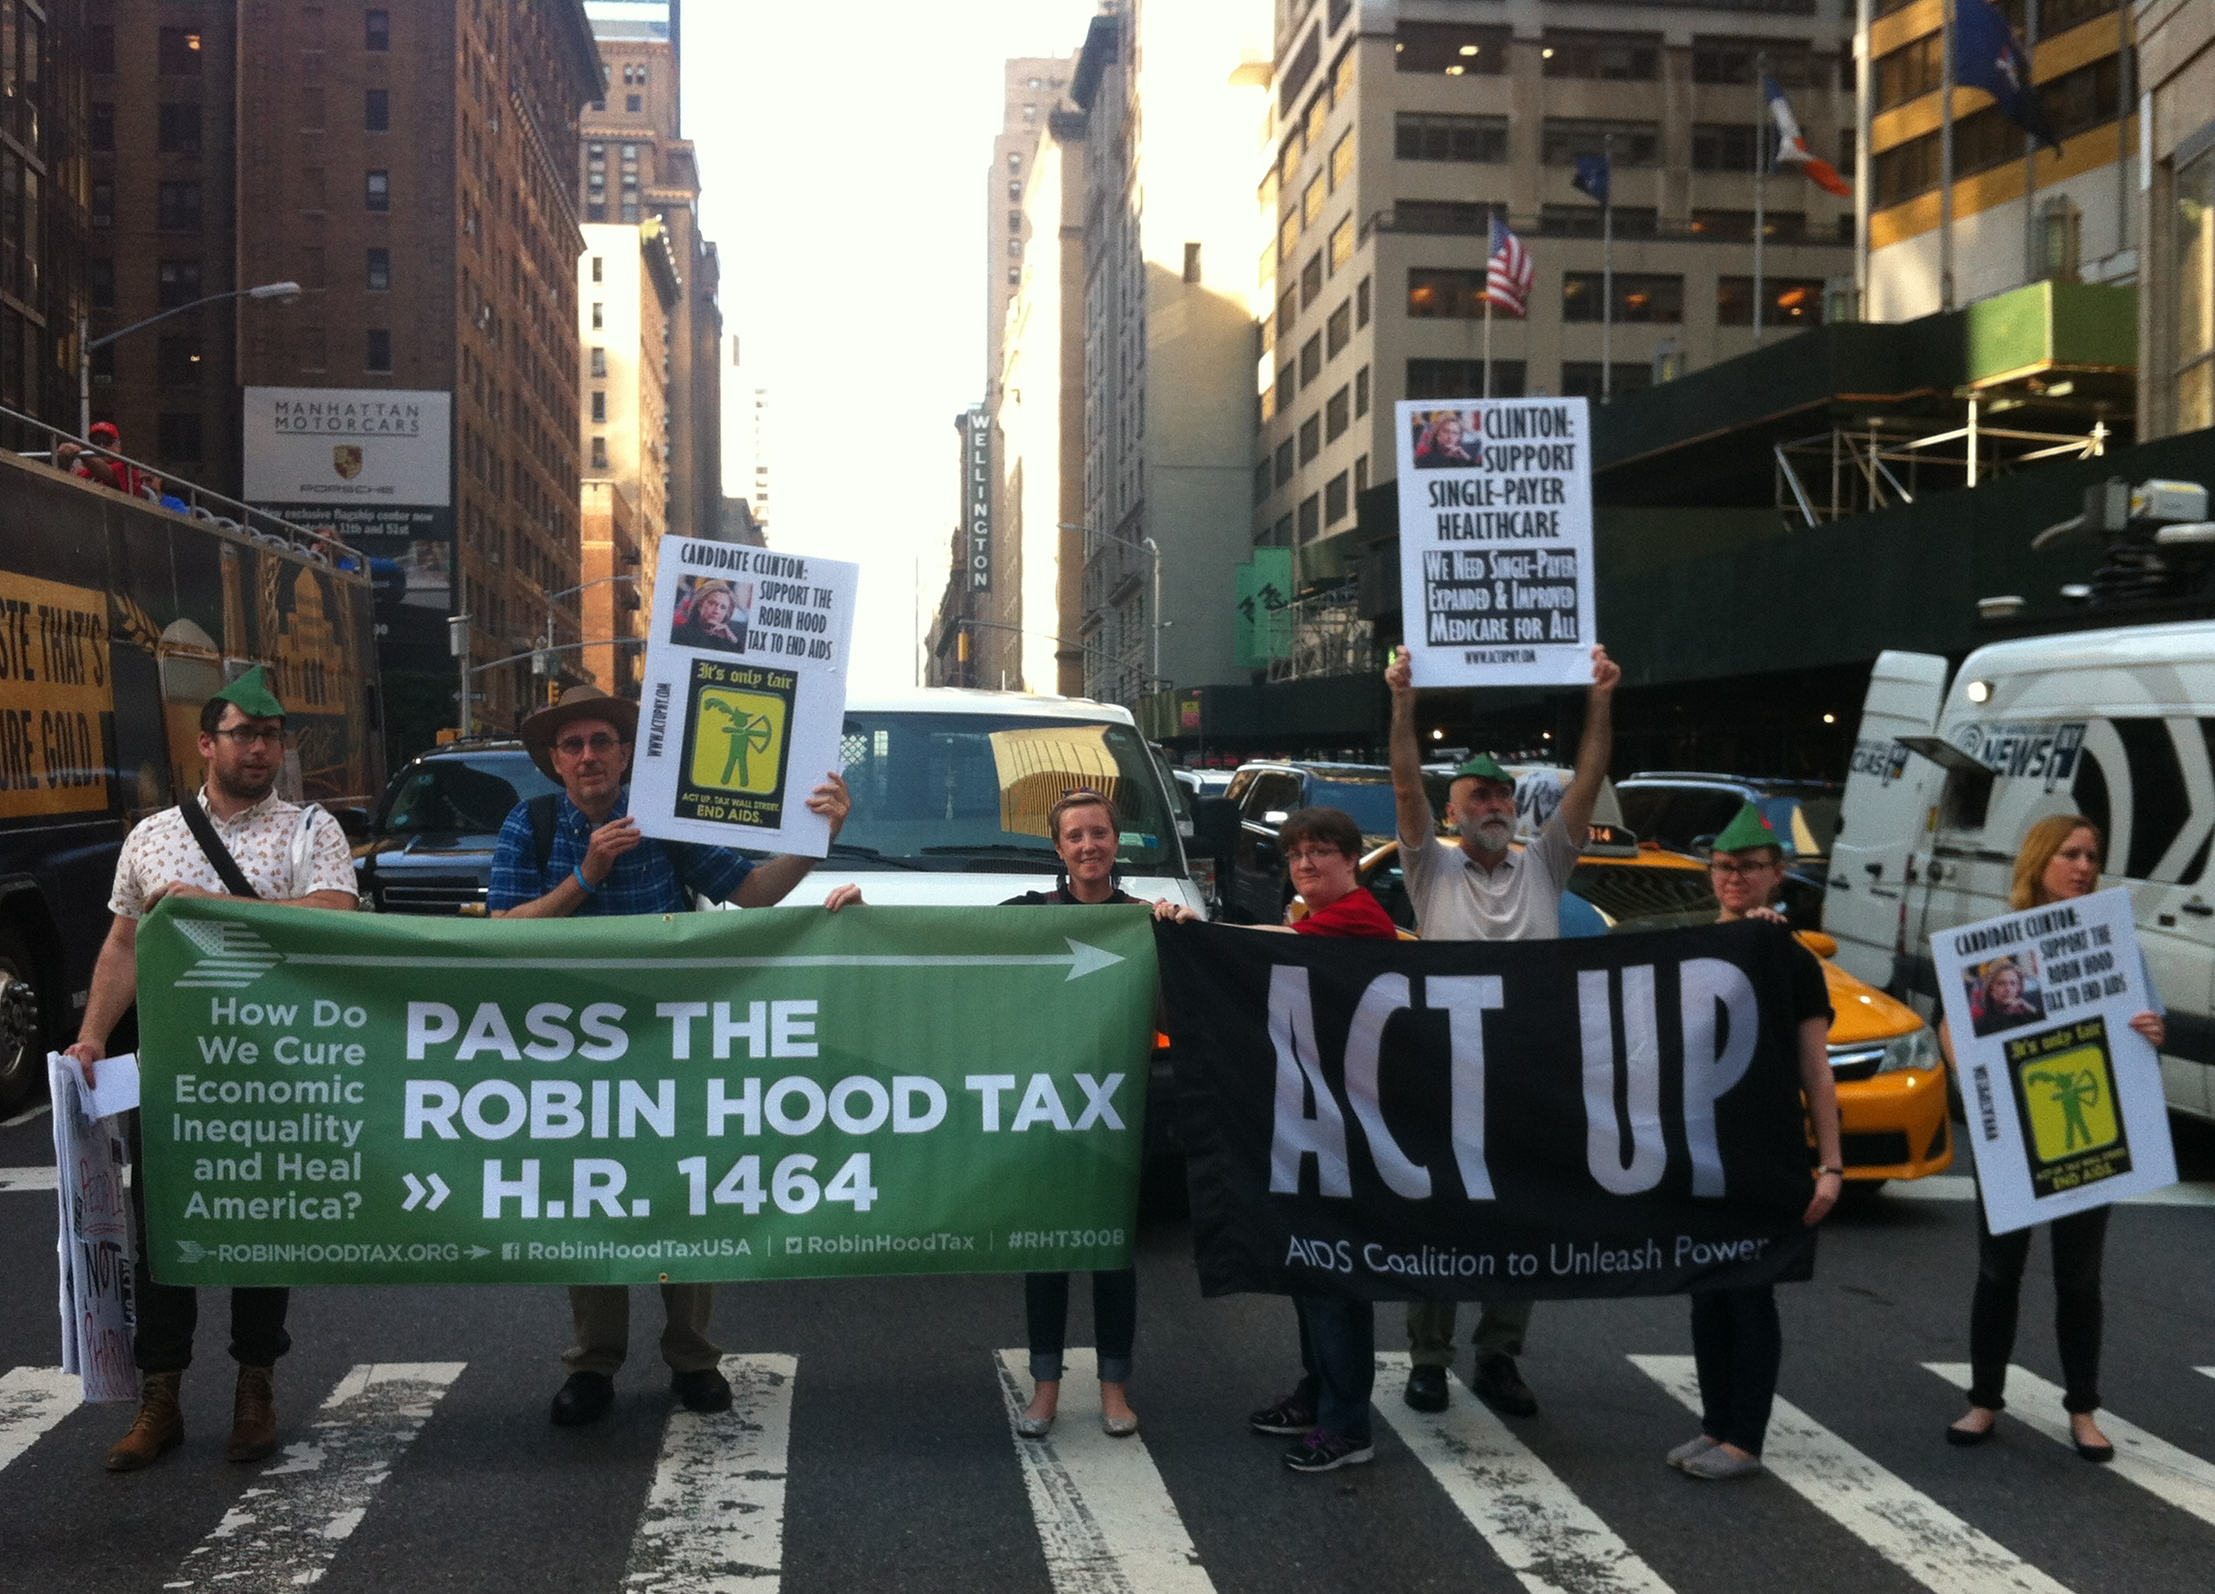 Members of  ACT UP NY  group took to the street with protest signs and banners outside the  Sheraton Times Square , where Democratic Party presidential primary candidate  Hillary Rodham Clinton  was attending a fundraiser. Activists demanded a  tax  on Wall Street transactions to fund a  single-payer healthcare system  and affordable drug prices, which, when combined with other public health policy proposals, could end  AIDS .  Source :  Louis Flores/Progress Queens